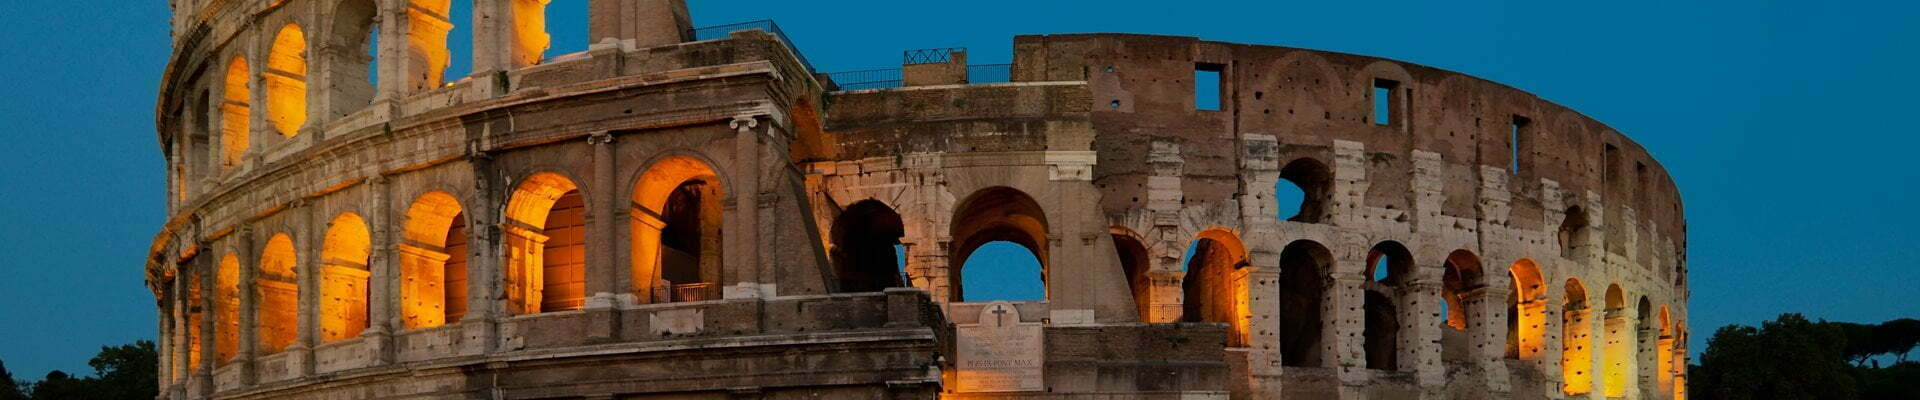 The arches of the Colosseum by night.